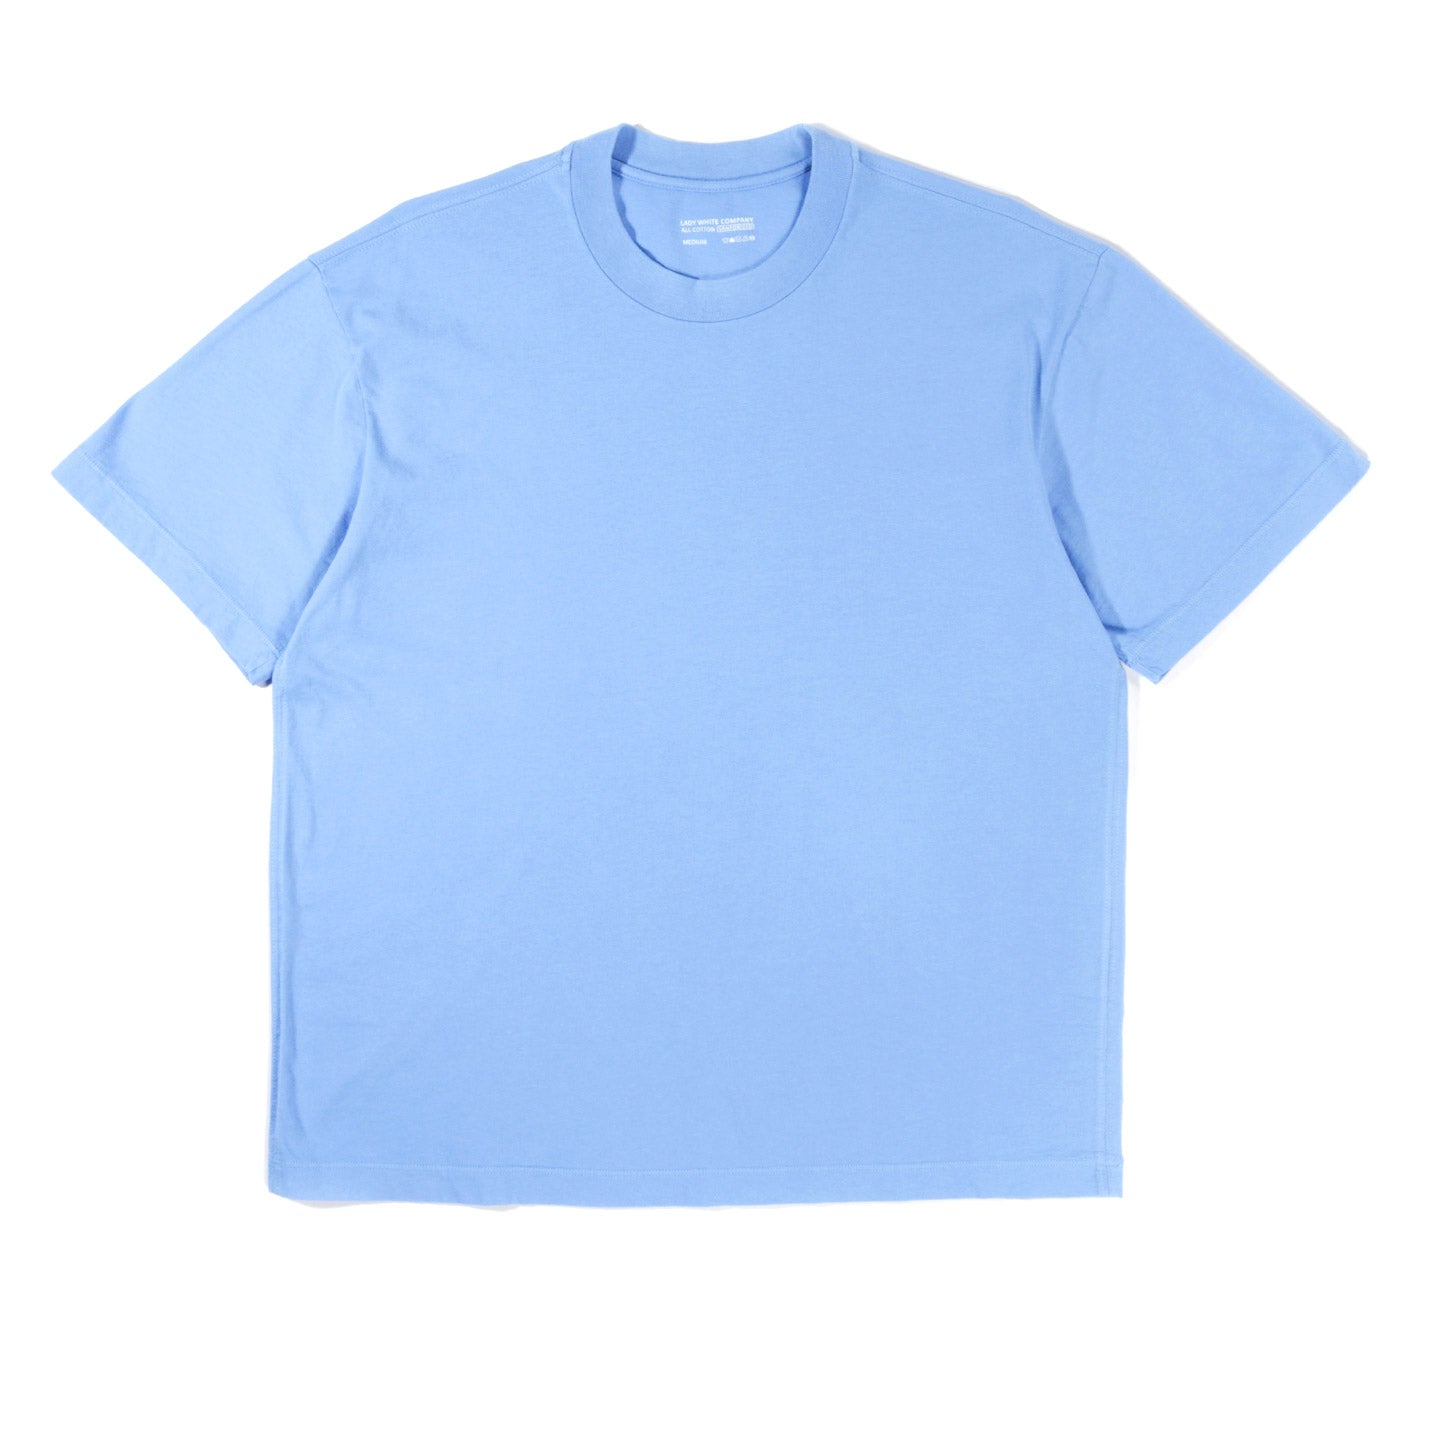 LADY WHITE CO. ATHENS T-SHIRT SKY BLUE